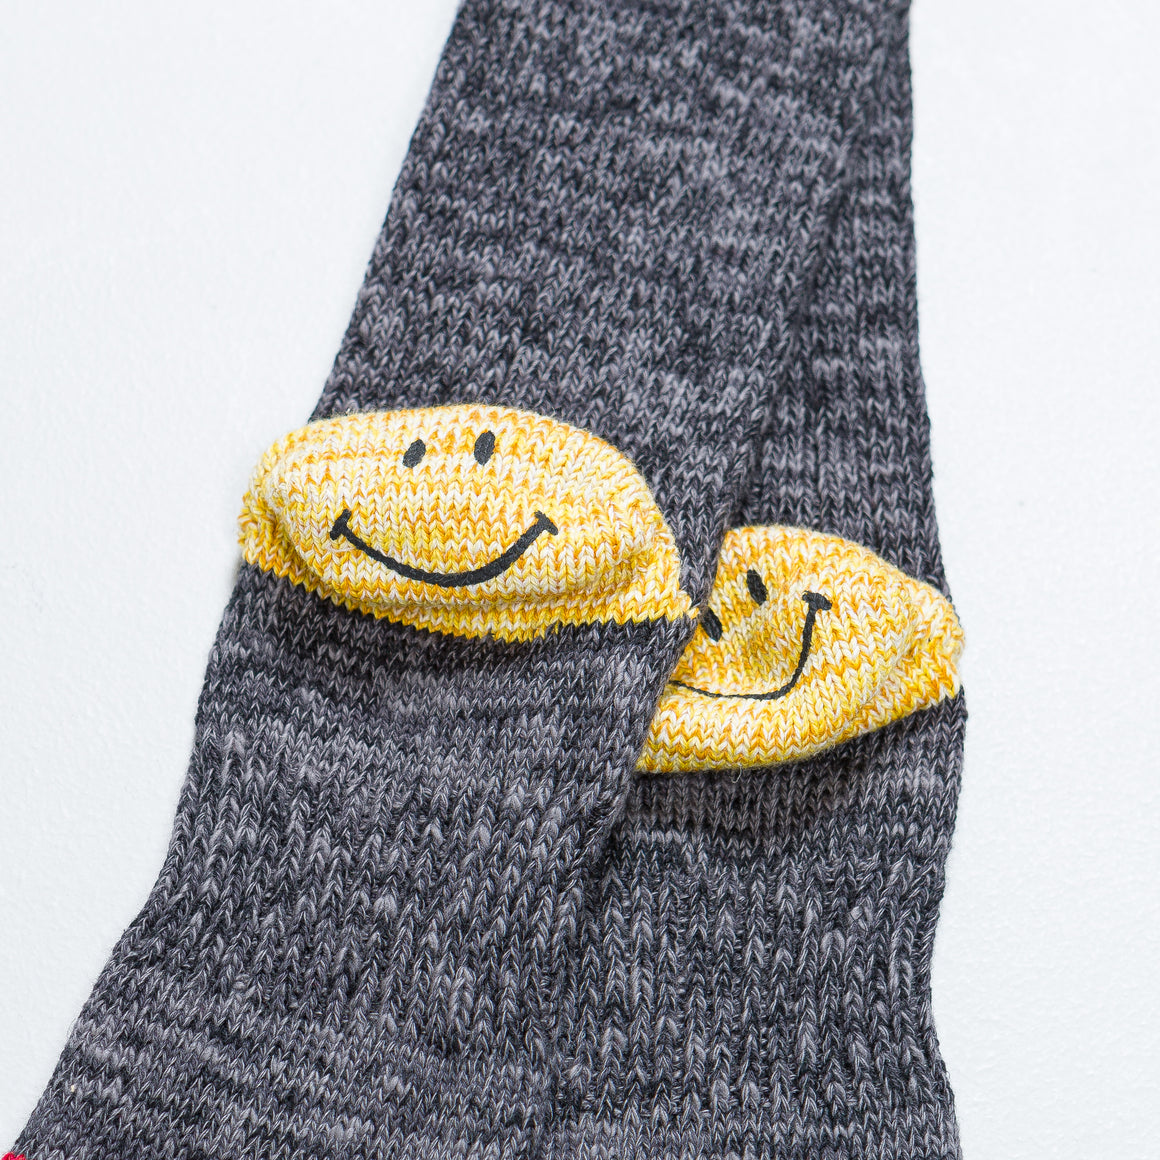 Kapital - 64 Yarns IVY Smilie Heel Hold Socks - Grey - Up There